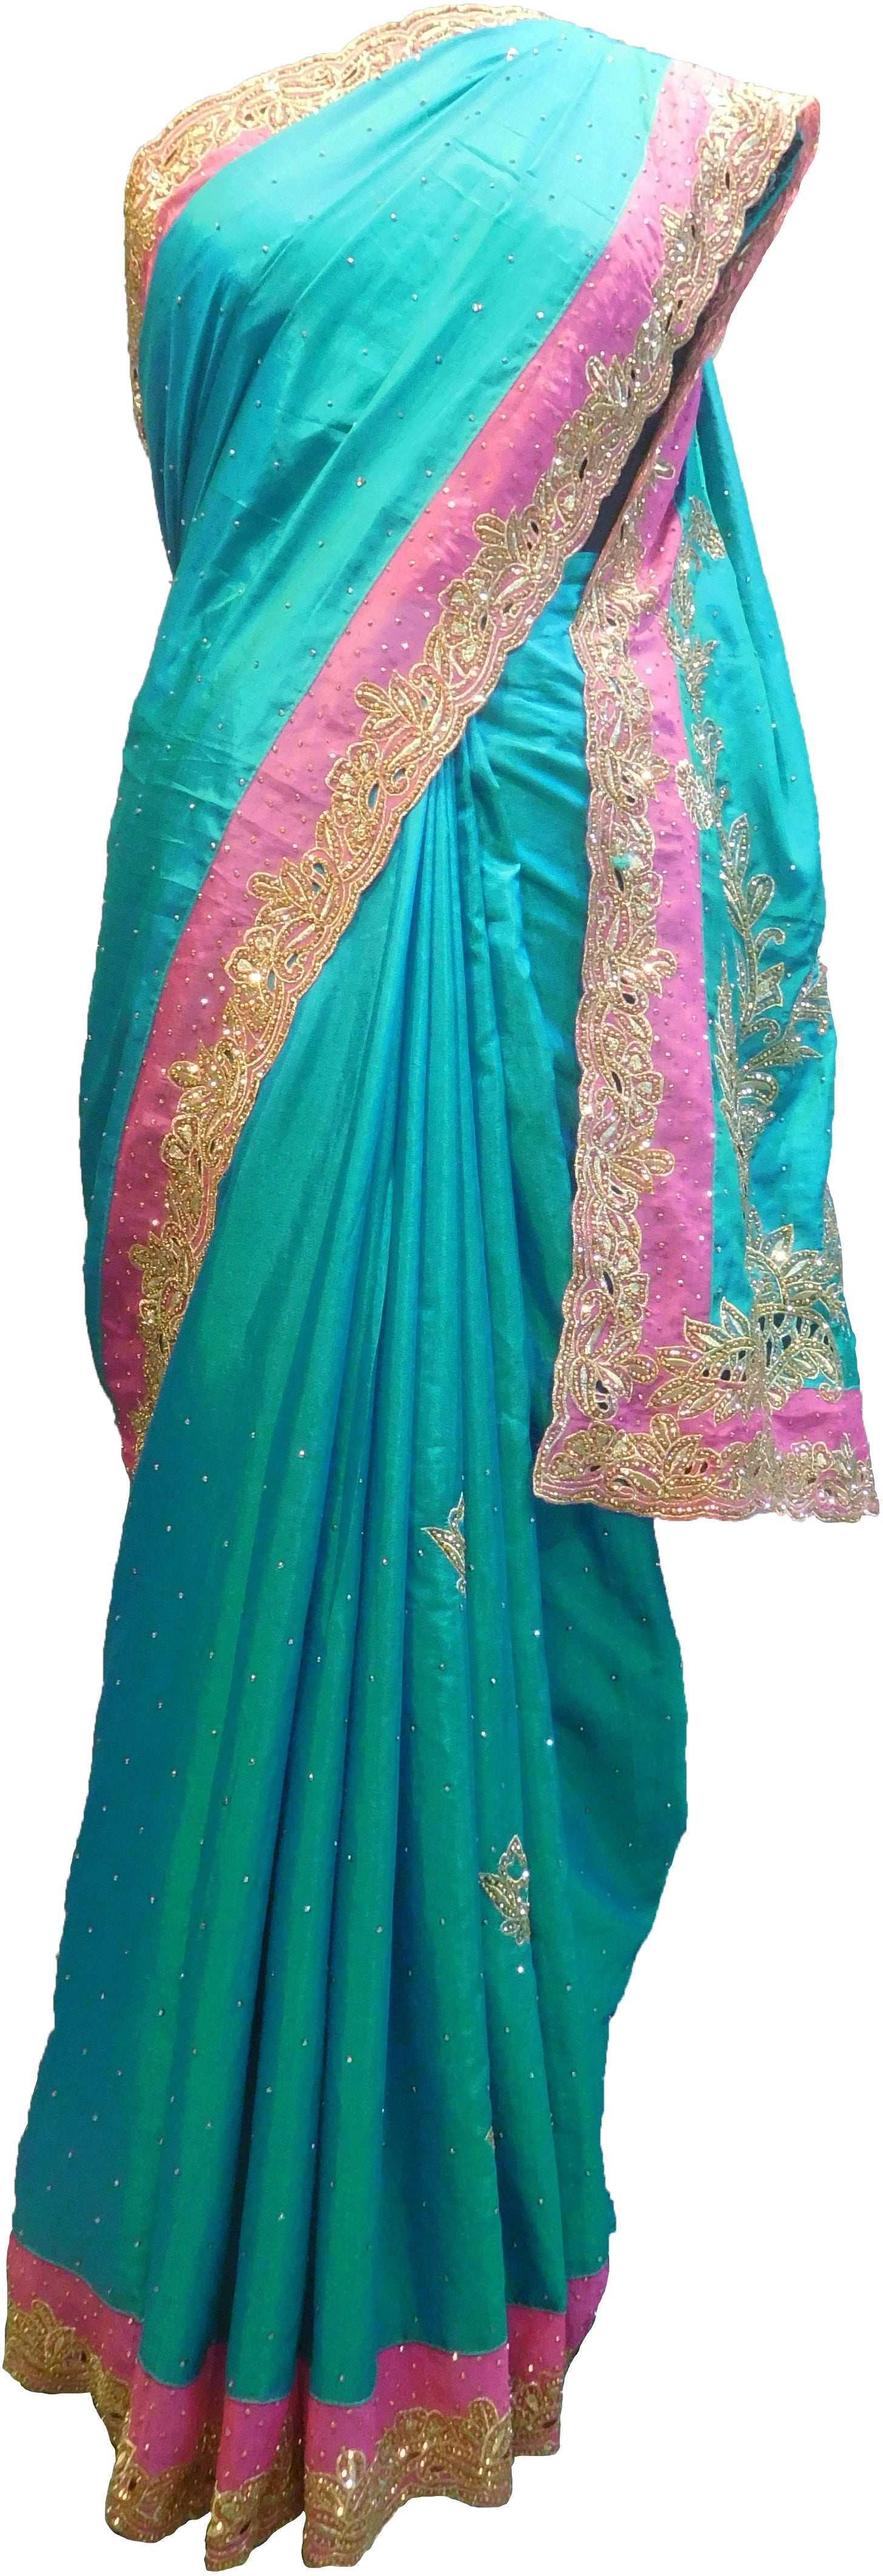 SMSAREE Turquoise & Pink Designer Wedding Partywear Silk Stone & Zari Hand Embroidery Work Bridal Saree Sari With Blouse Piece F302